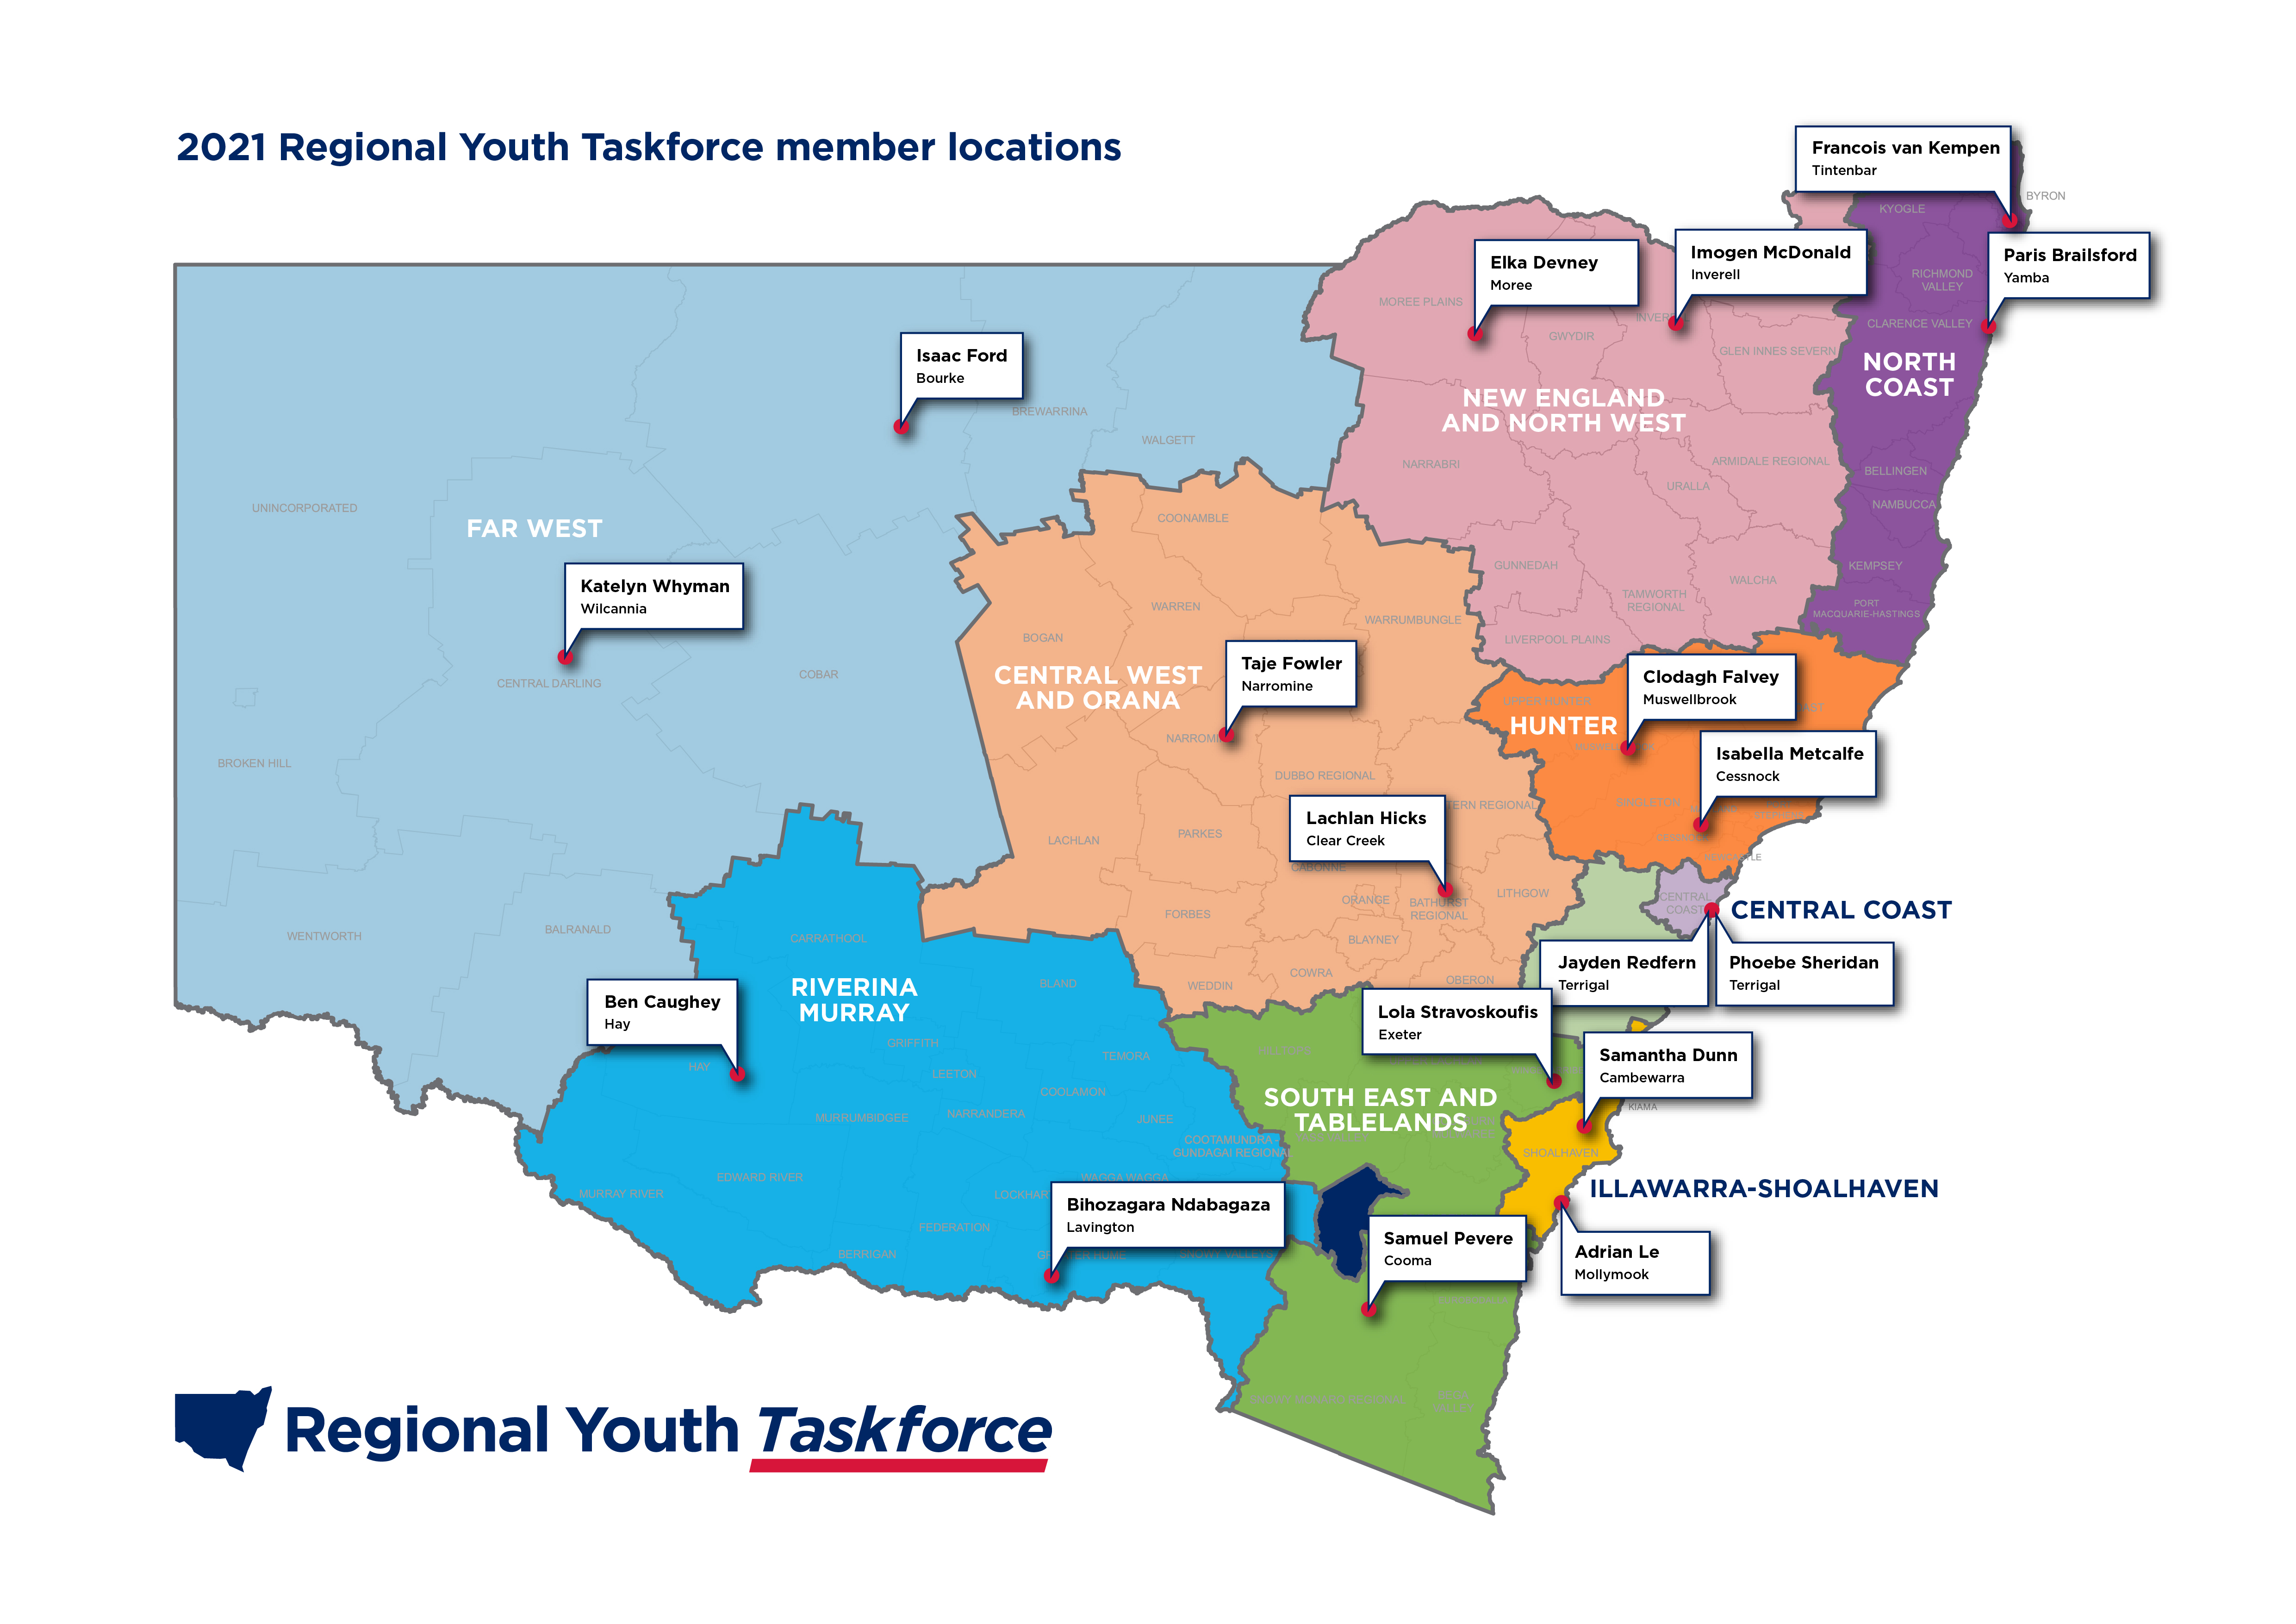 2021 Regional Youth Taskforce